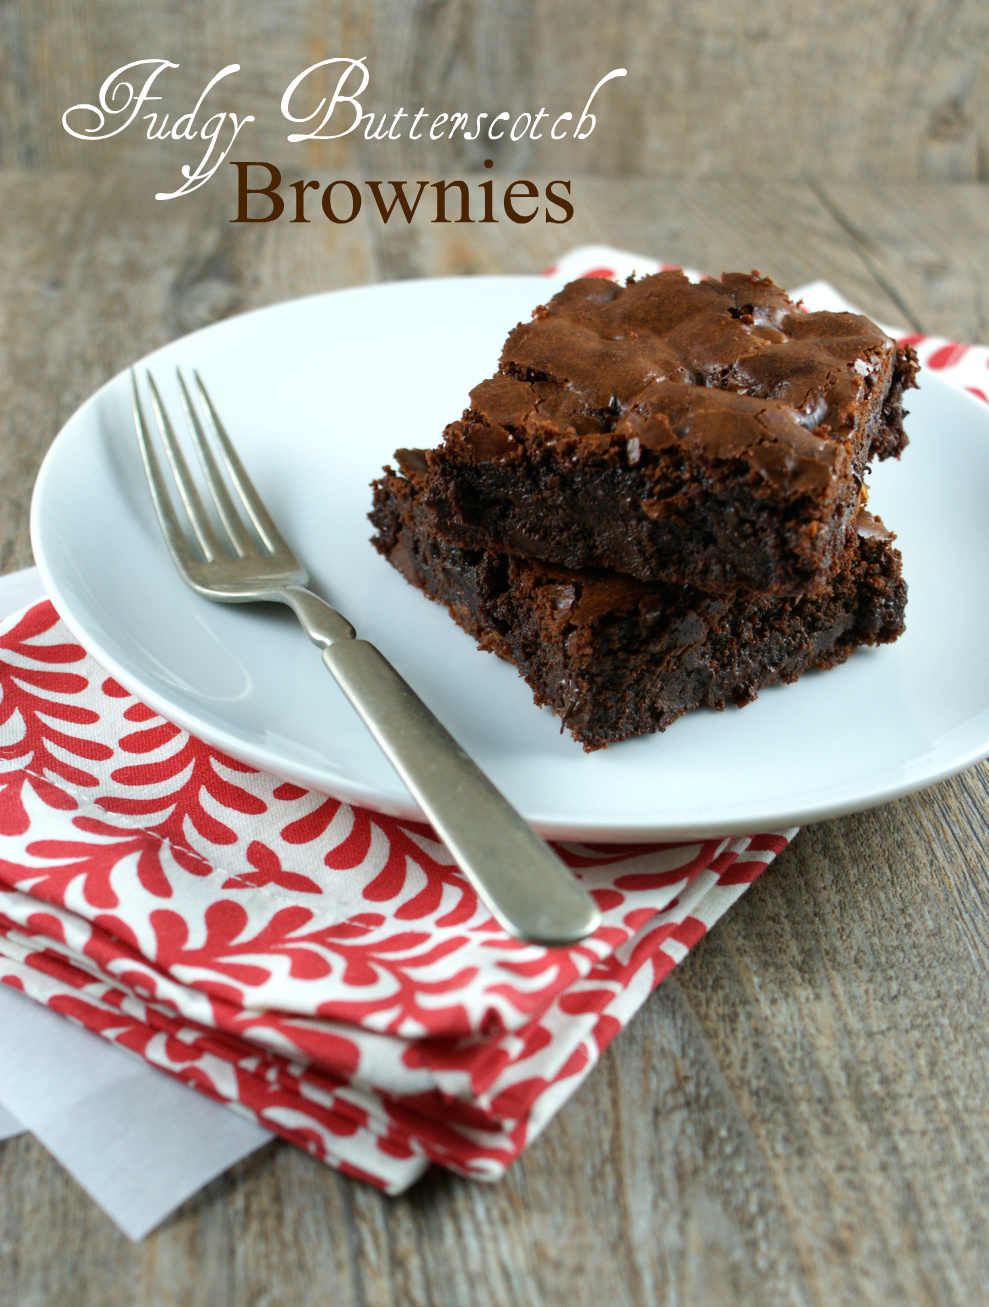 AUTHENTIC SUBURBAN GOURMET FUDGY BUTTERSCOTCH BROWNIES